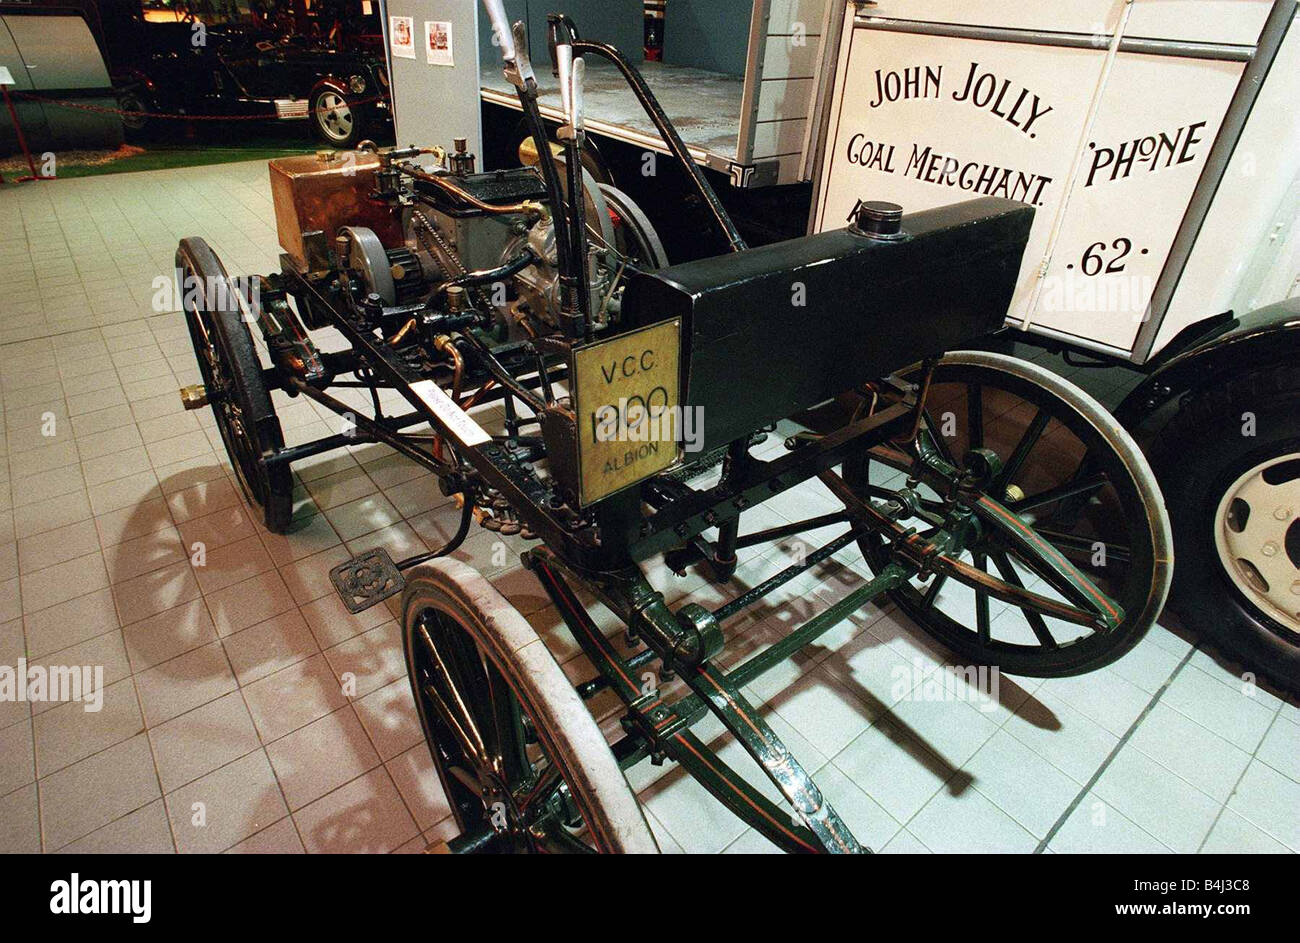 ALBION VINTAGE CAR CLUB MADE IN 1900 SCOTTISH MOTOR OLD CLASSIC CARS ...